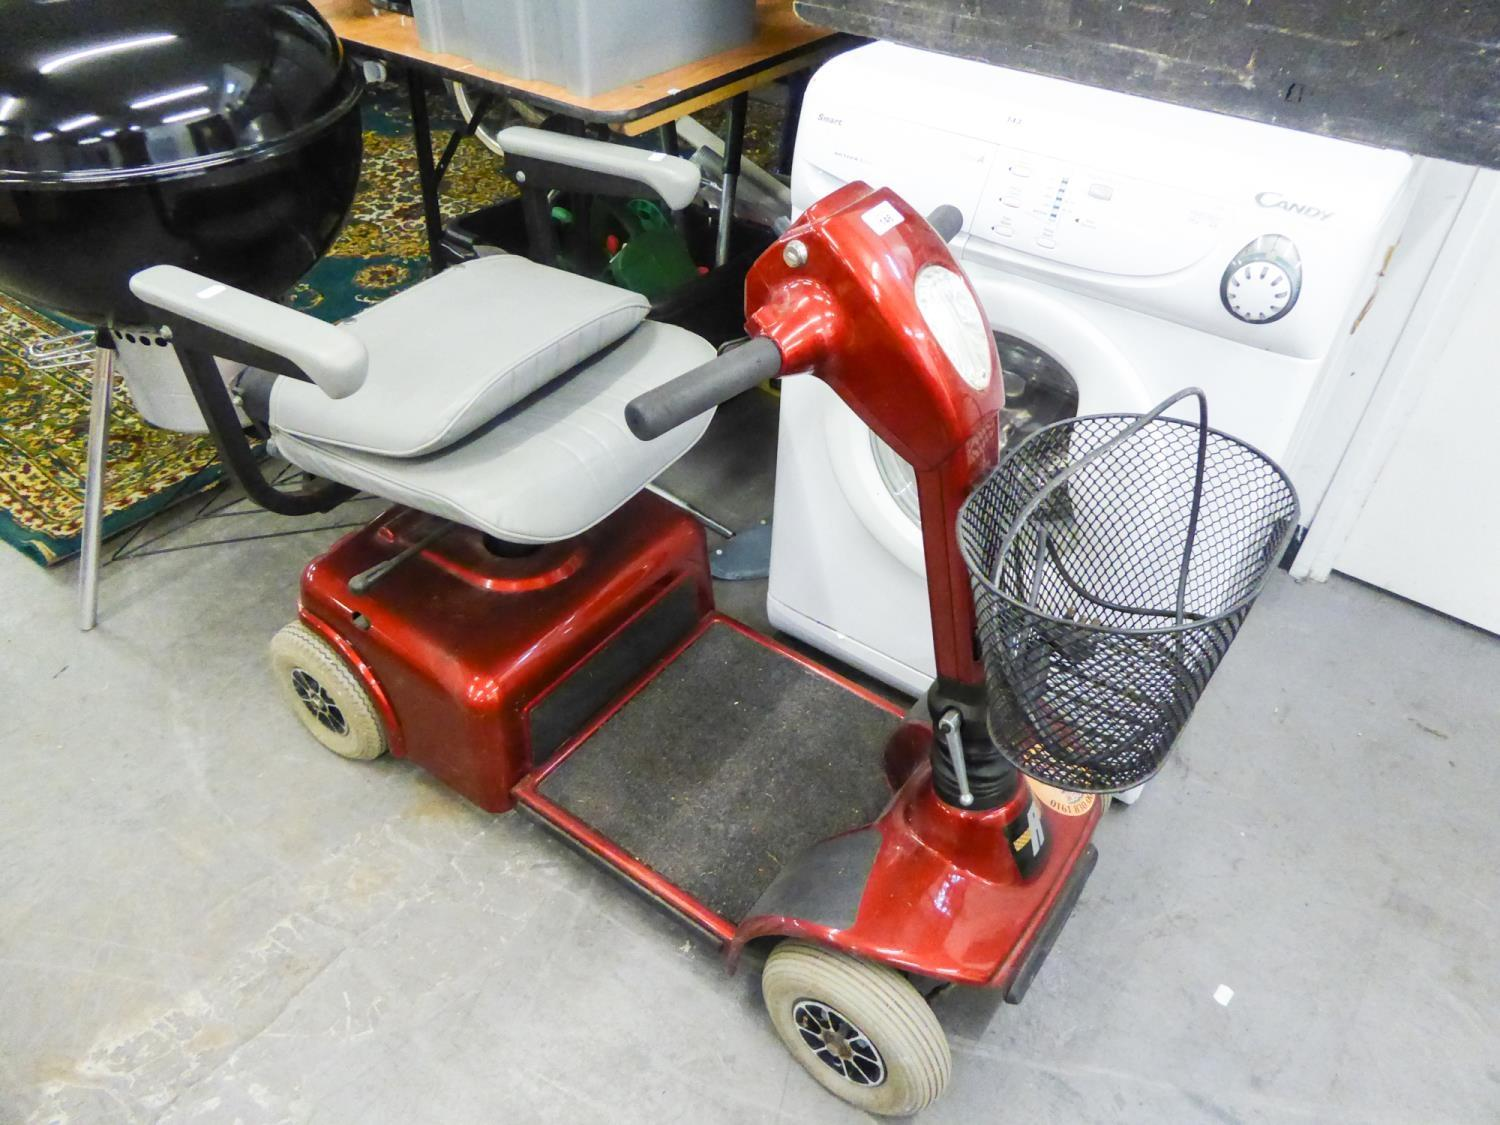 Lot 146 - A MOBILITY BUGGY WITH BATTERY ELECTRIC MOTOR (WORKING CONDITION NOT KNOWN)